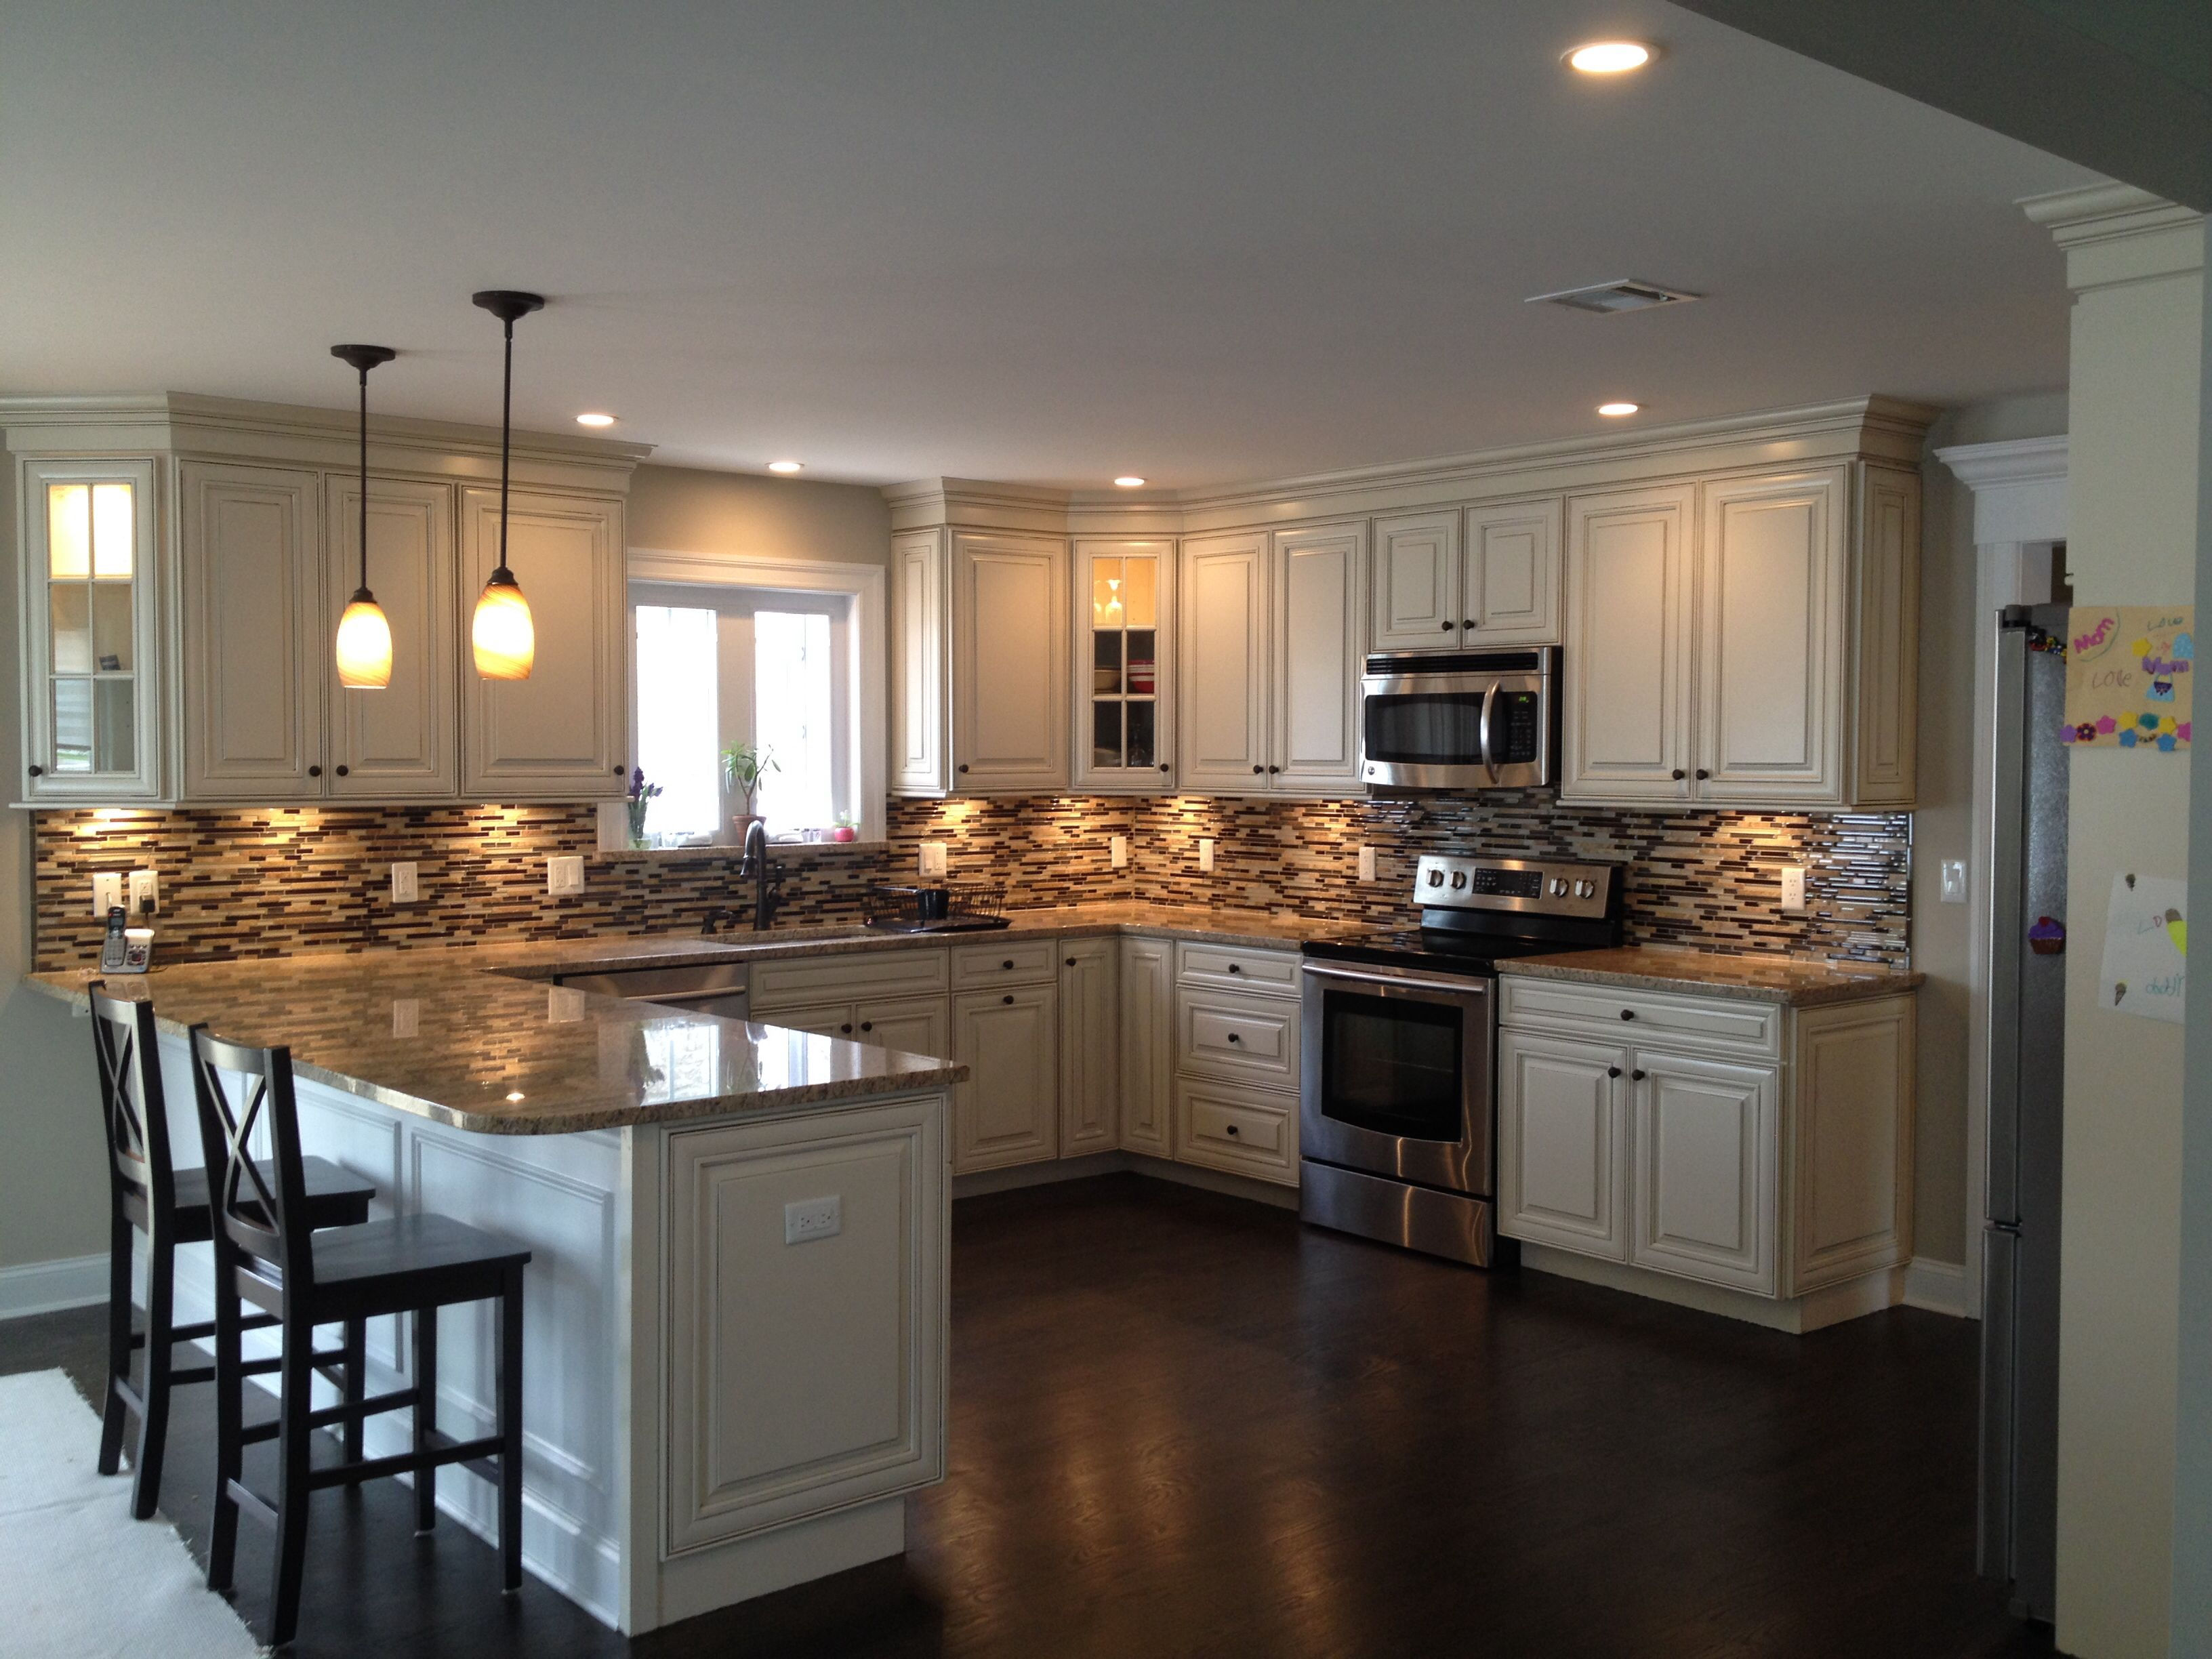 U shaped kitchen with peninsula design with American Woodmark